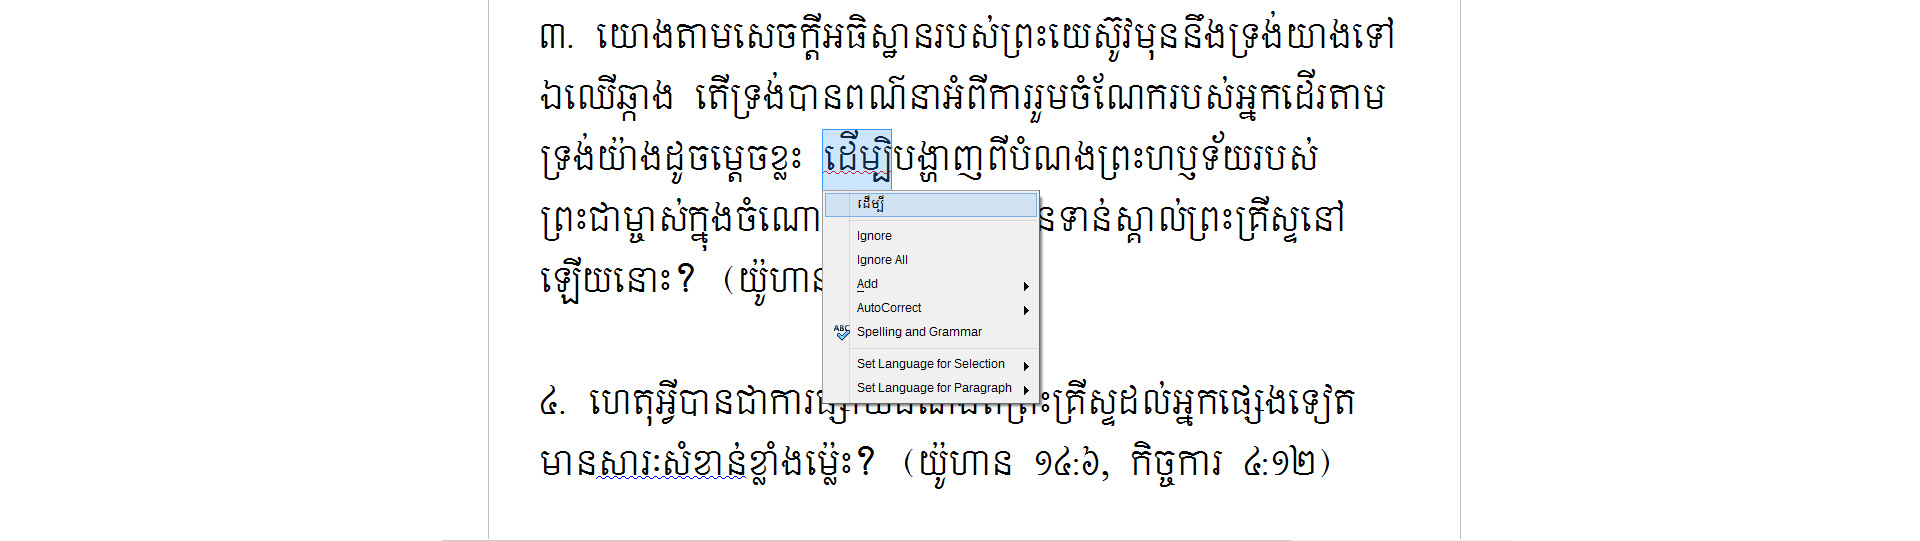 Khmer SBBIC Unicode System Font - Society for Better Books in Cambodia